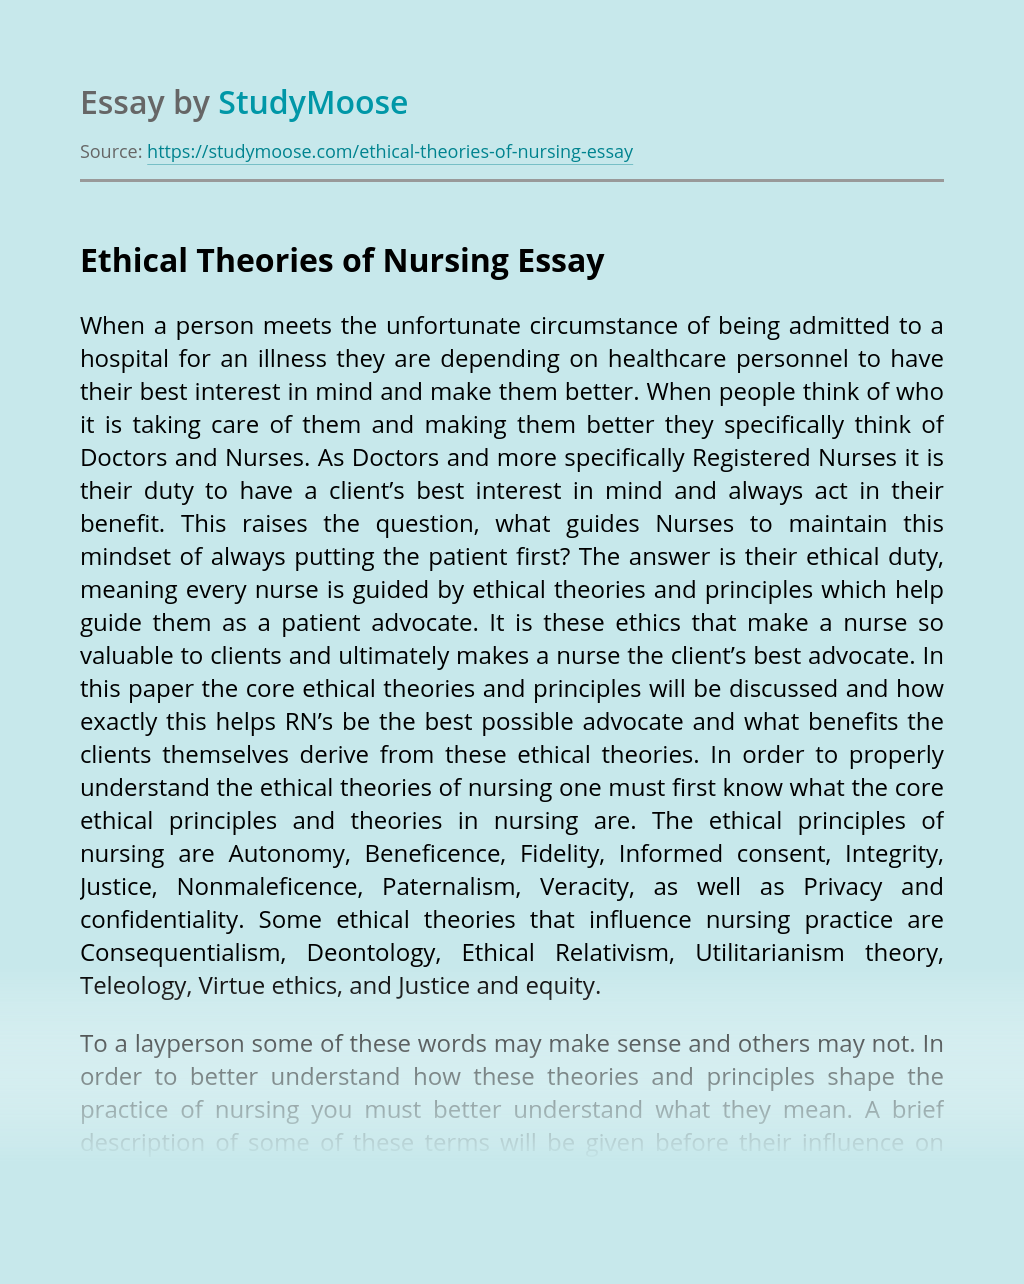 Ethical Theories of Nursing